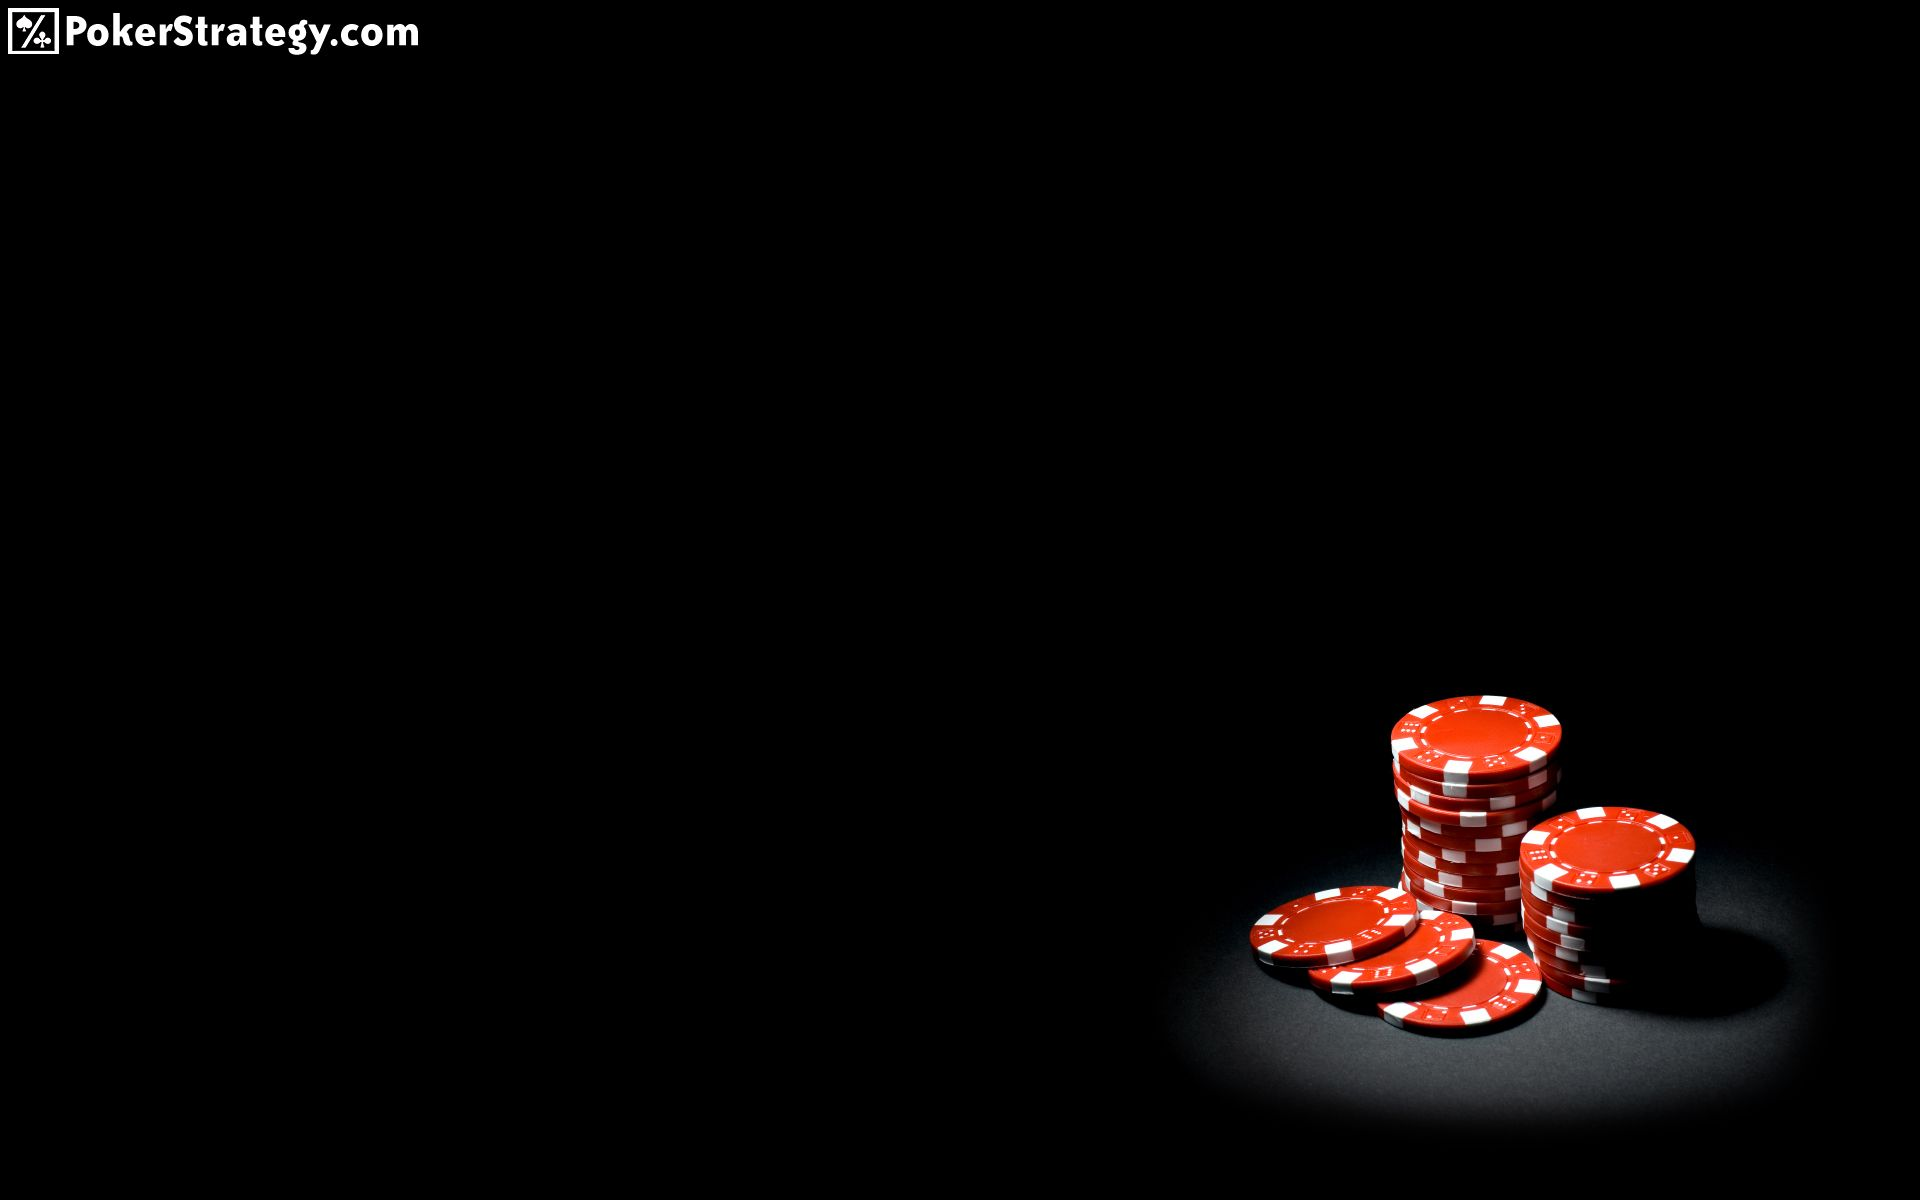 Guidelines Not To Follow About Gambling